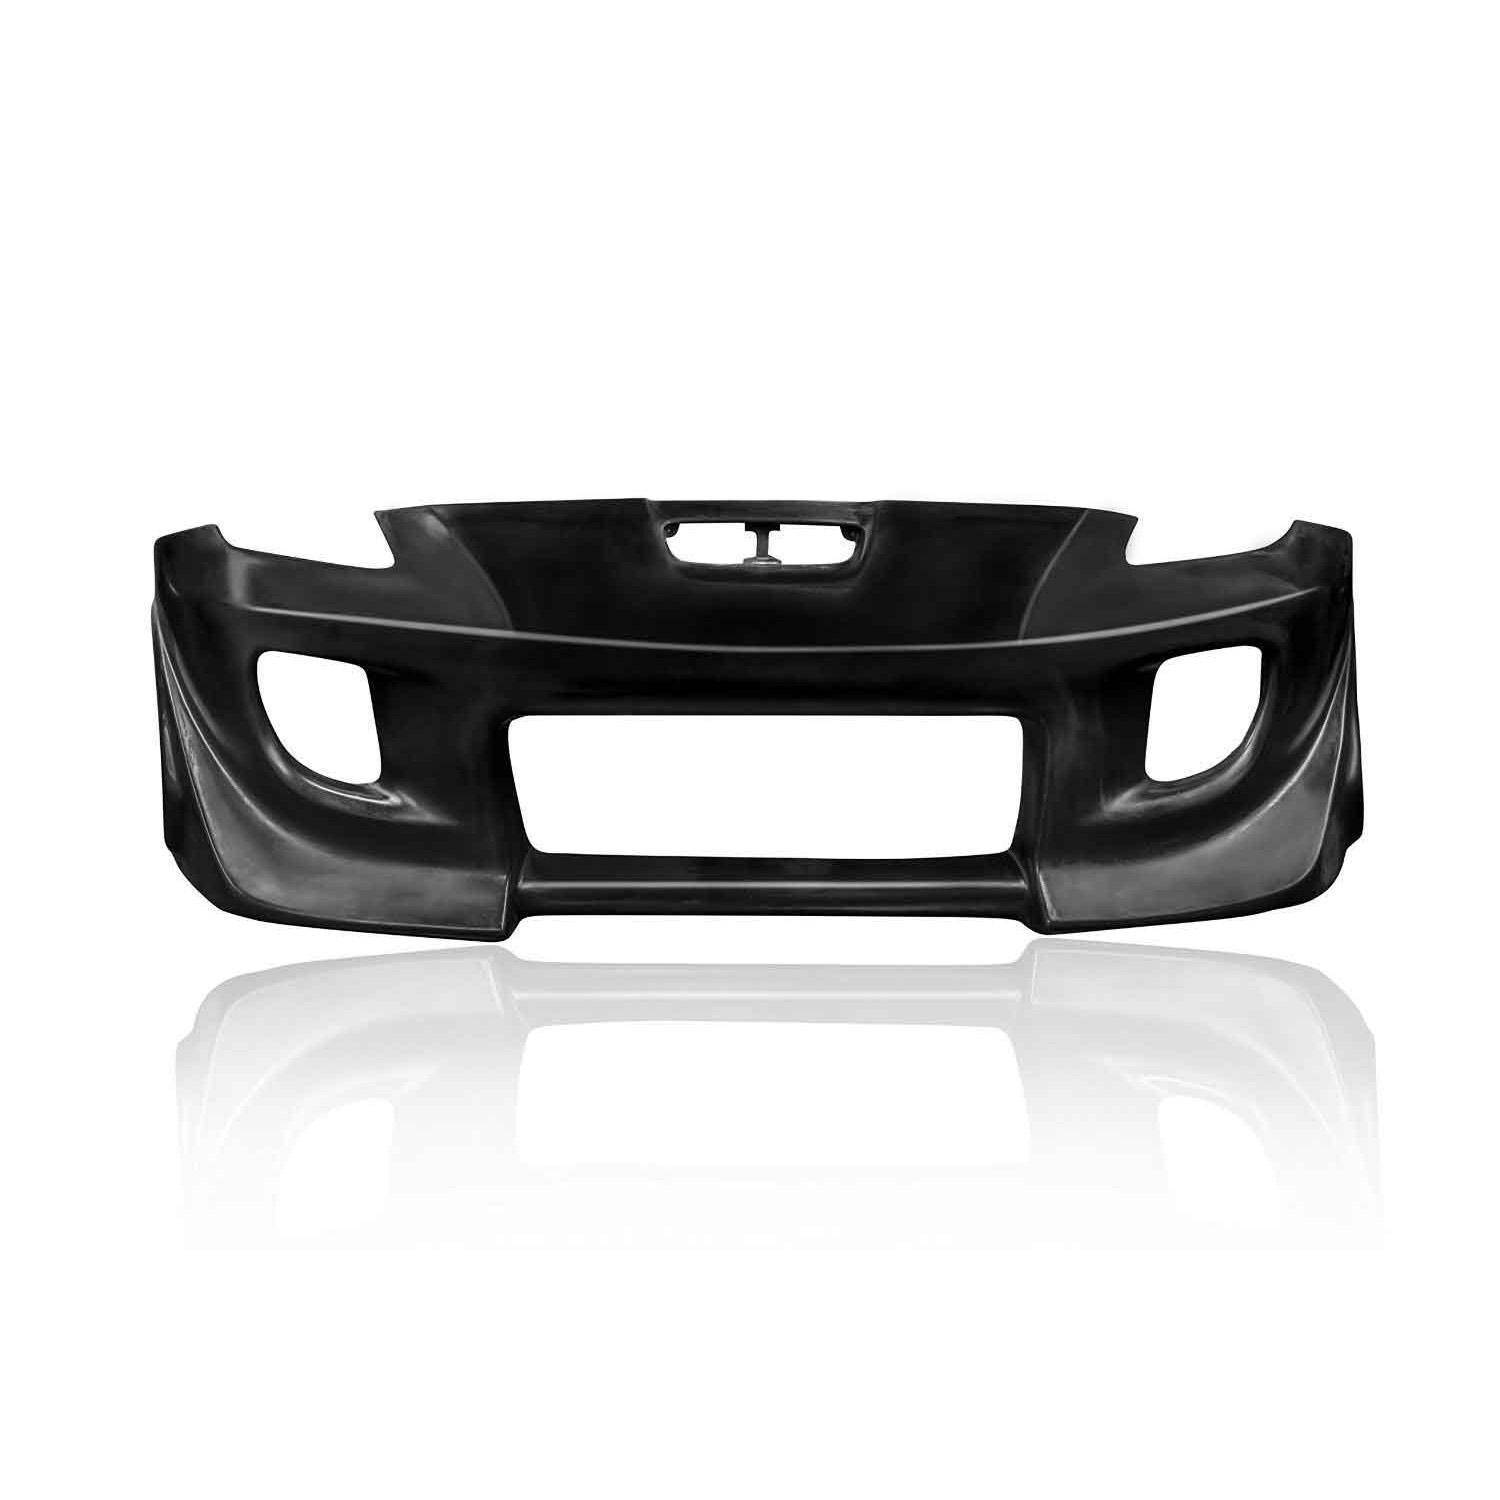 Toyota Celica 2000-2005 Blits Style 1 Piece Polyurethane Front Bumper